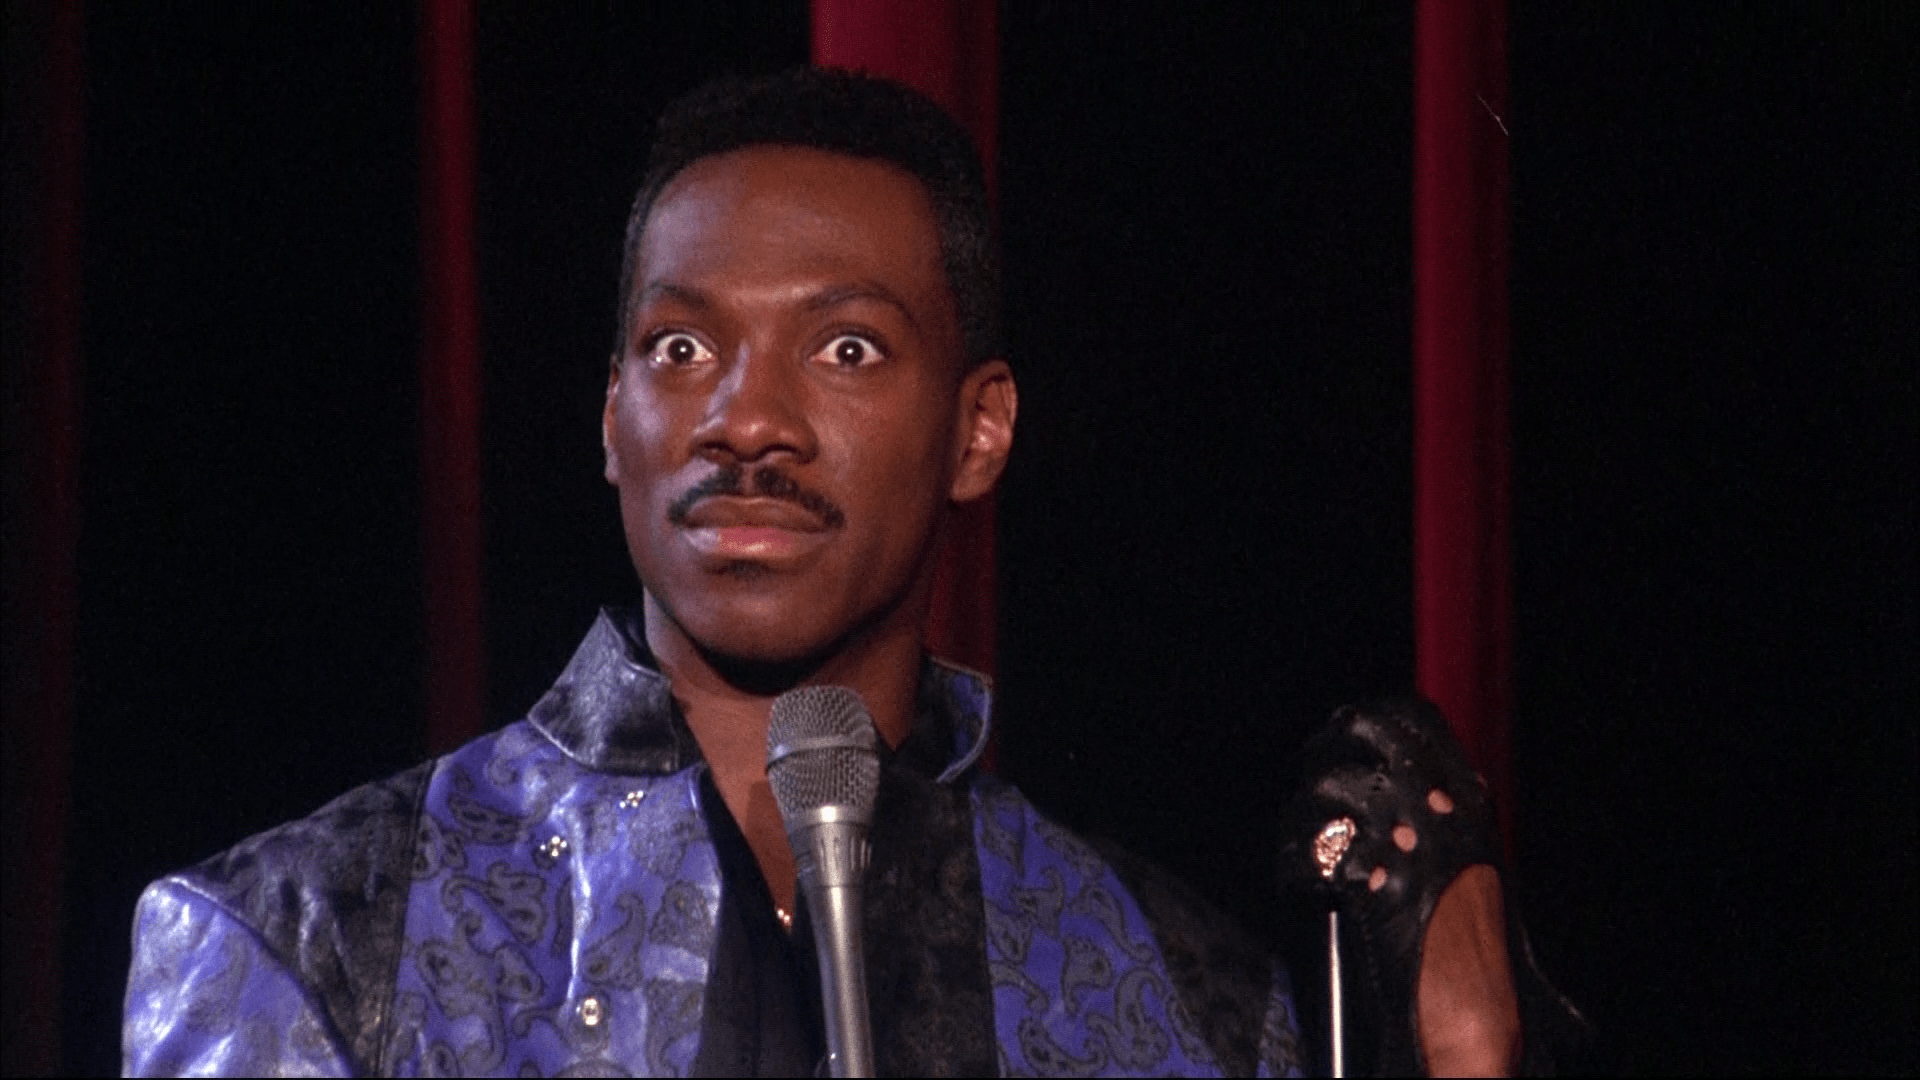 Eddie Murphy Full hd wallpapers